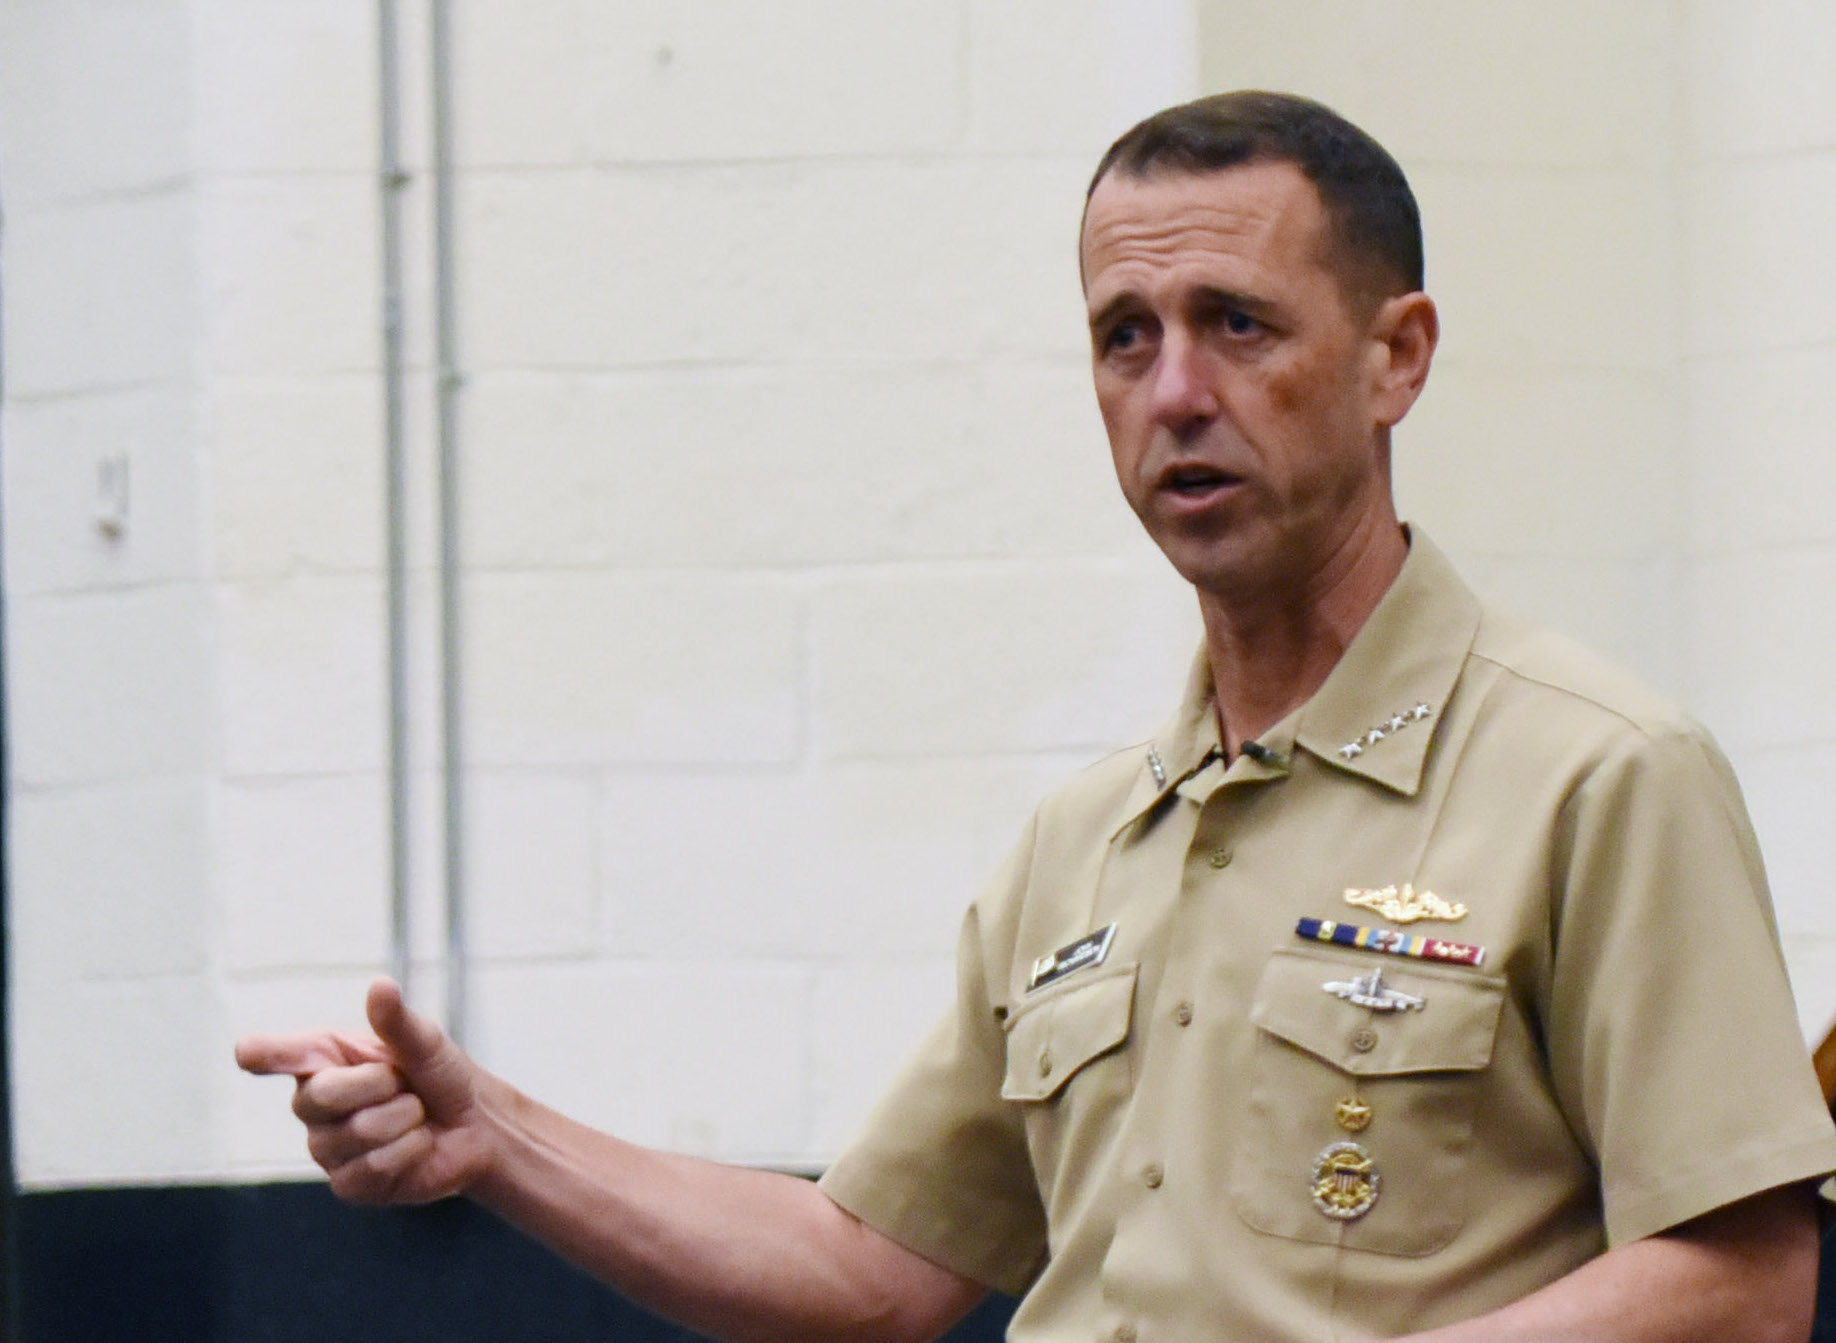 160929-N-OT964-120 NORFOLK (Sept. 29, 2016) Chief of Naval Operations (CNO) Adm. John Richardson speaking at Naval Station Norfolk, Va. on Sept. 29, 2016. US Navy Photo